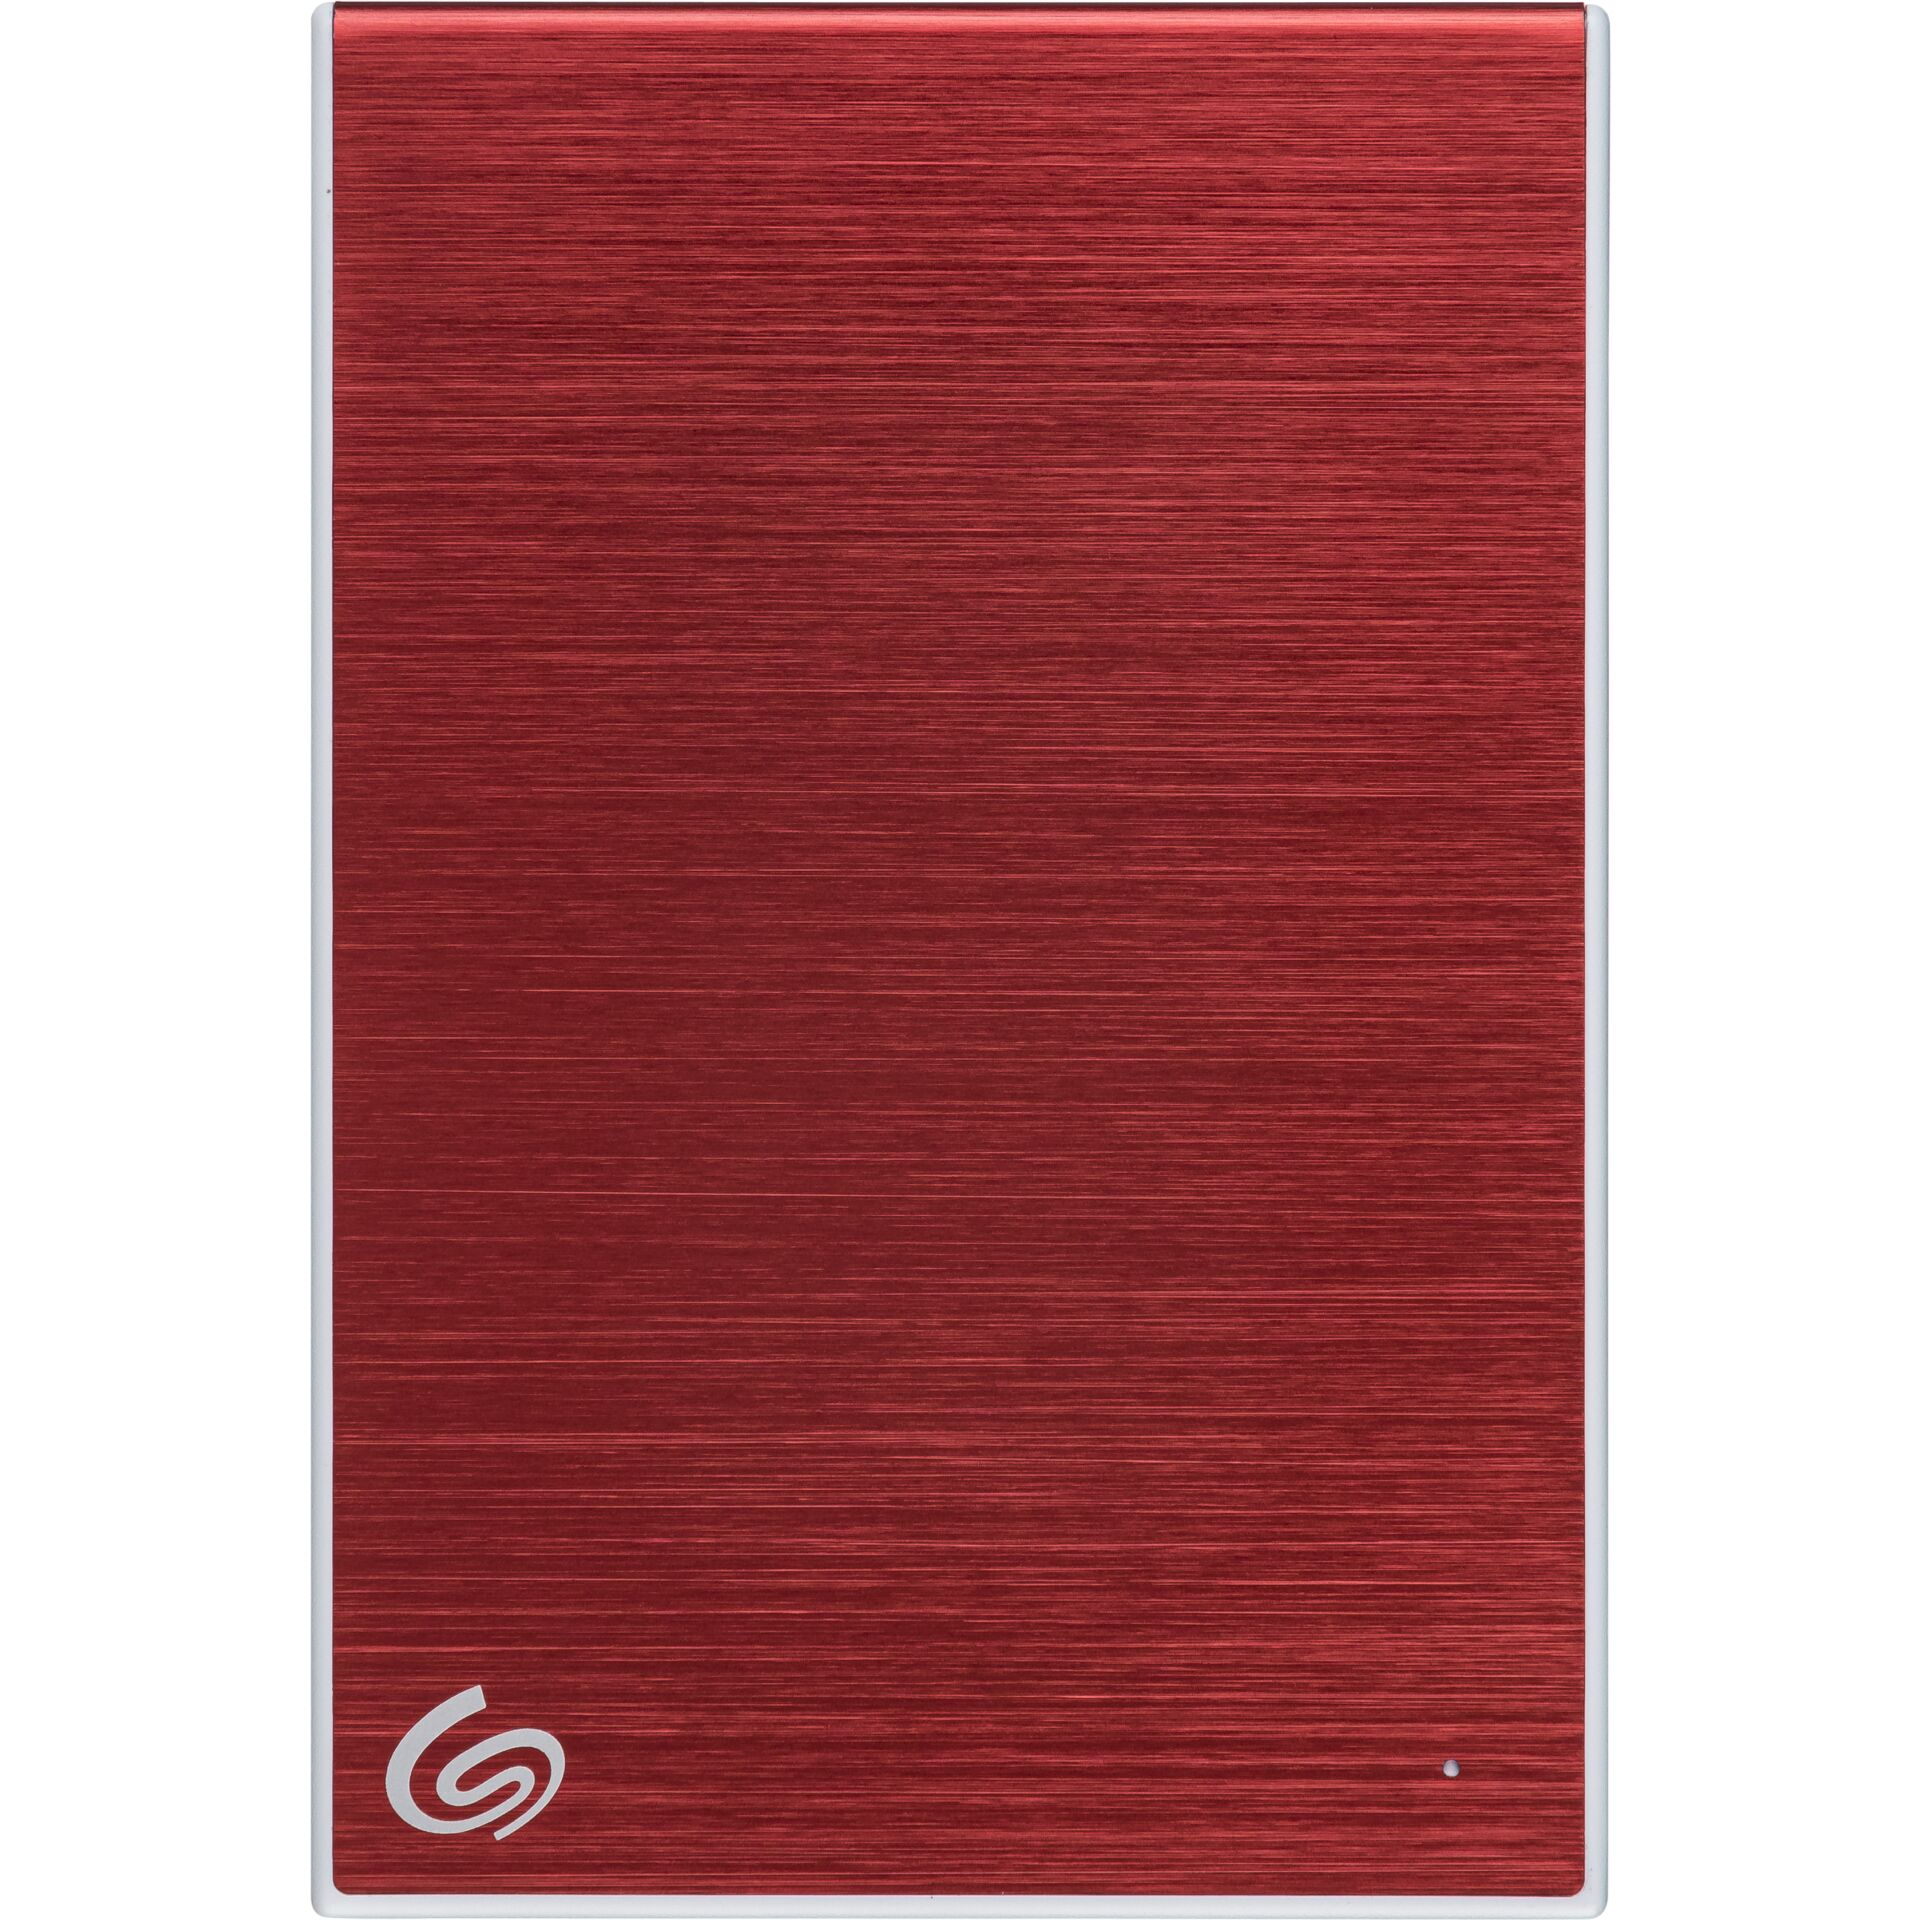 Seagate One Touch portable 1TB Red USB 3.0